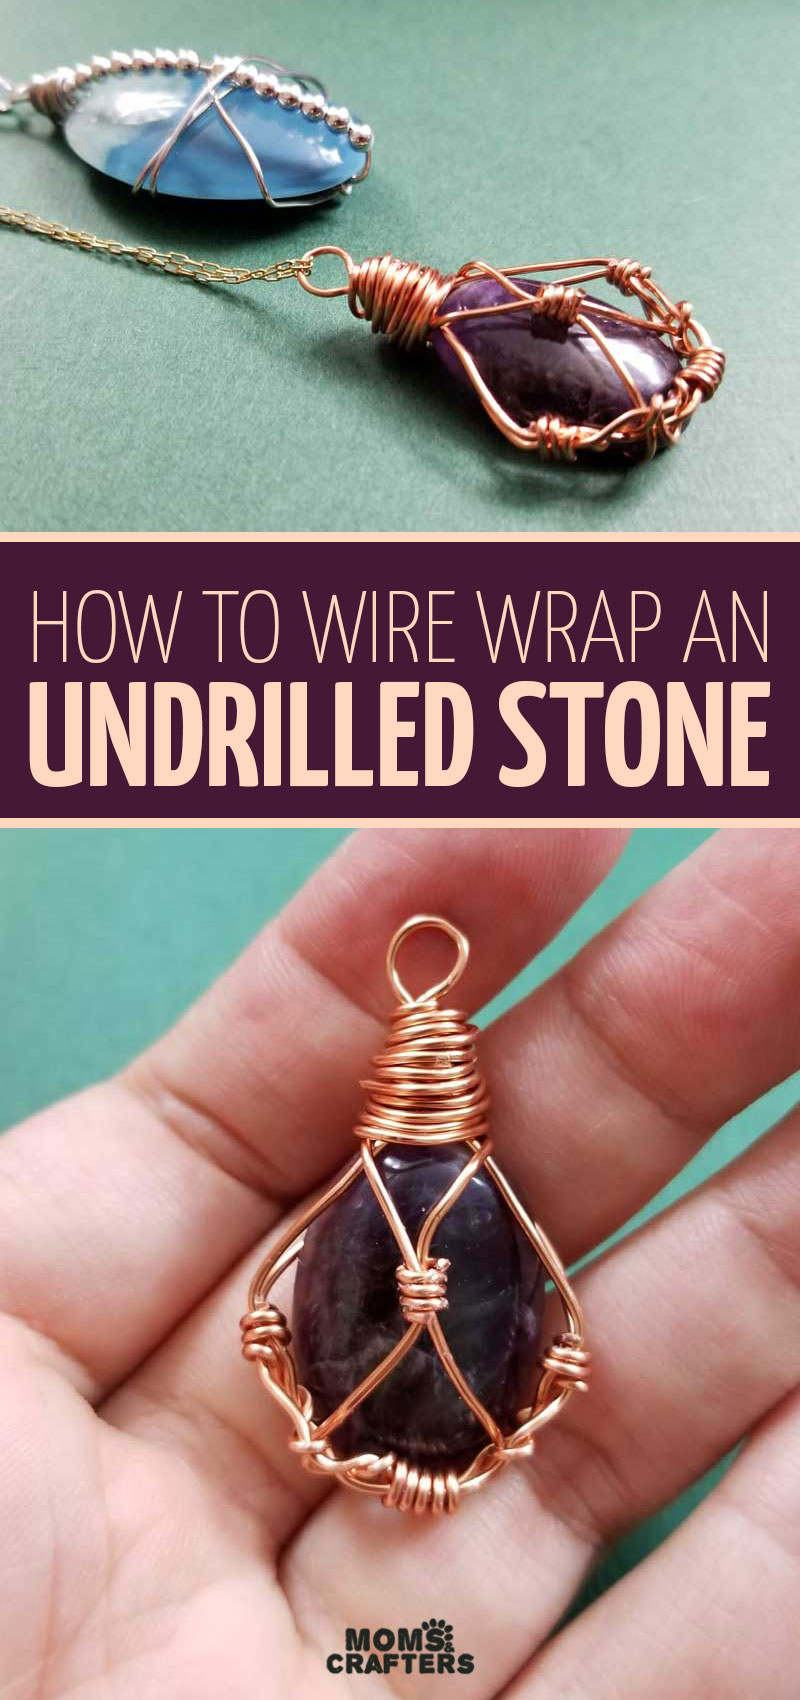 Click to learn how to wire wrap an undrilled stone with this DIY wire wrap stone pendant tutorial! It's a fun wire wrapping jewelry making tutorial for beginners and intermediates.